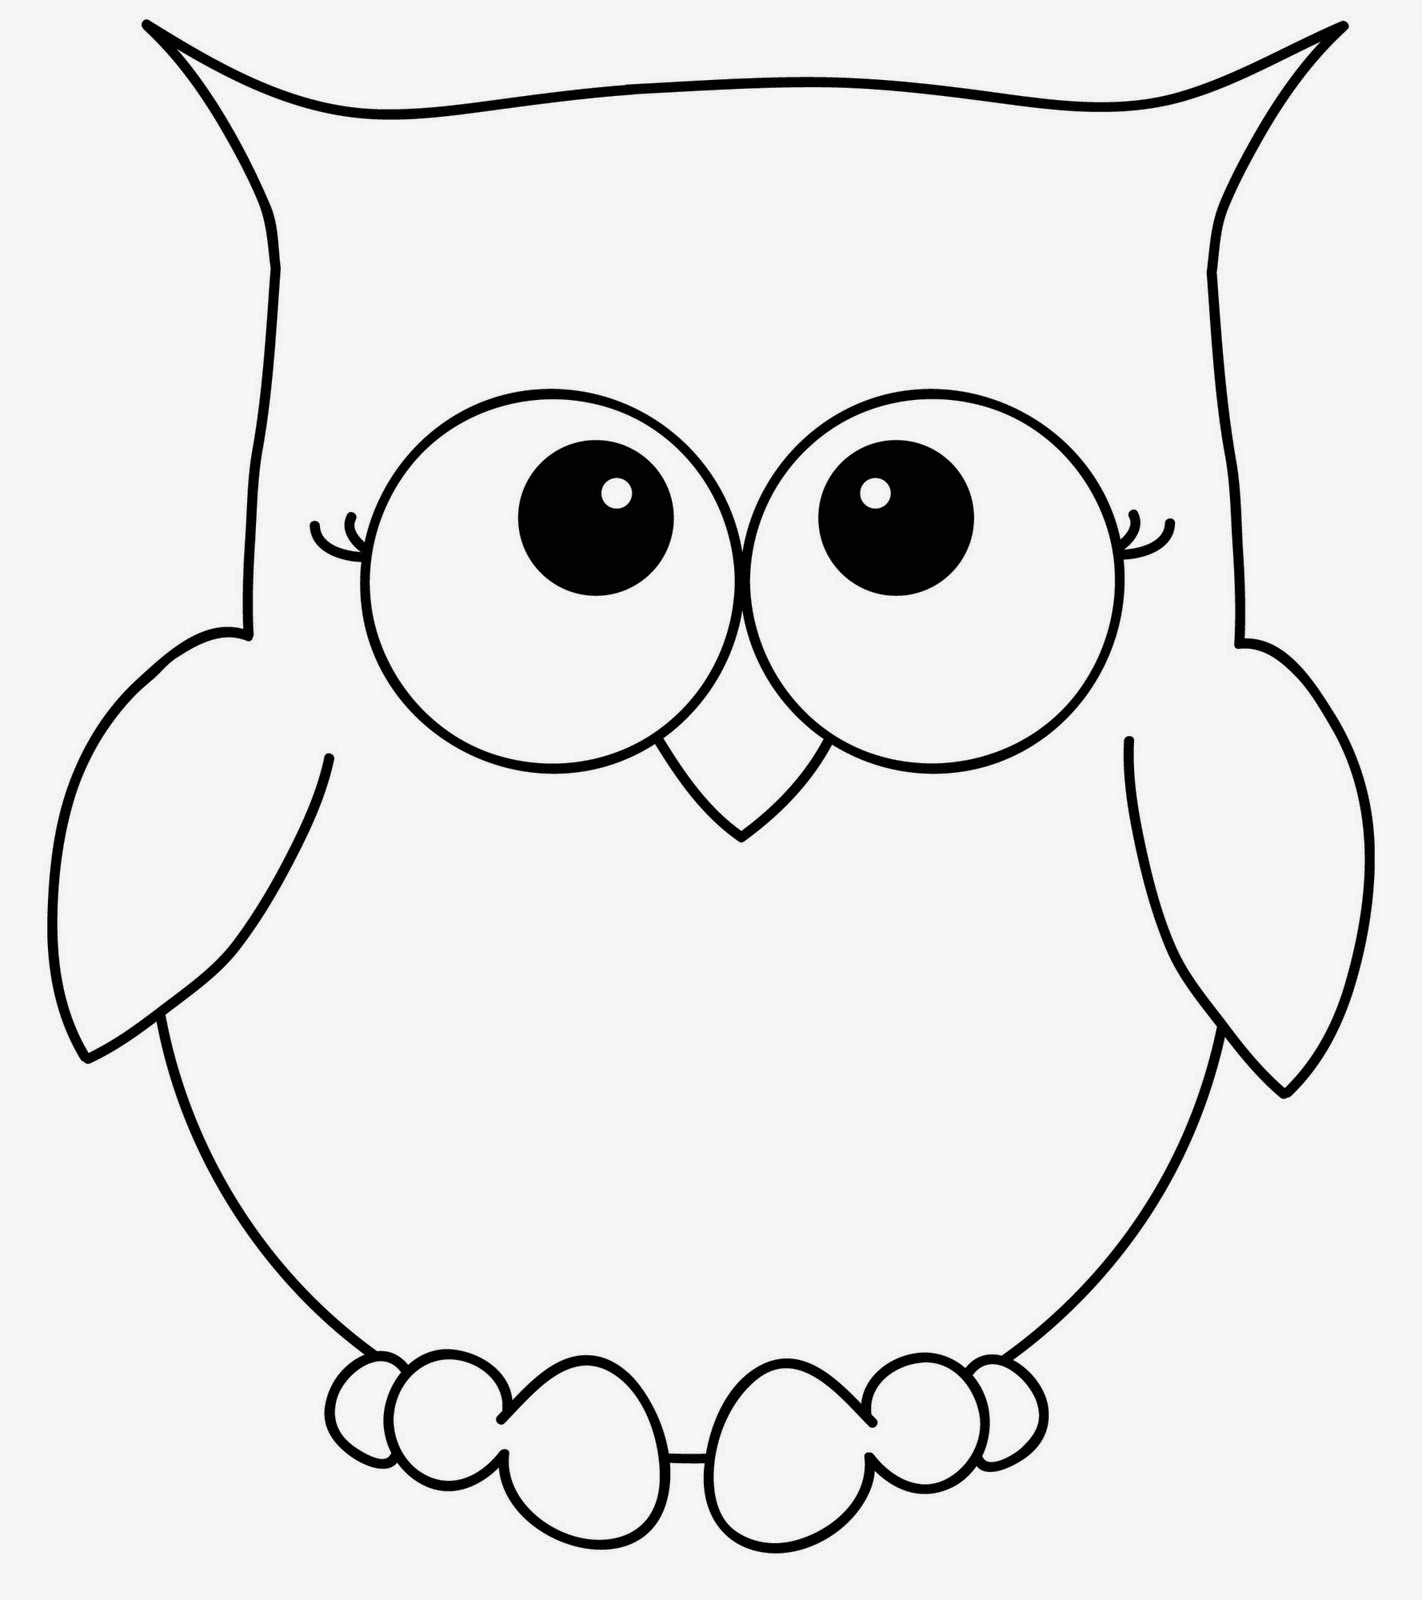 owl coloring pages for girls simple owl drawing coloring pages coloring owl for pages girls